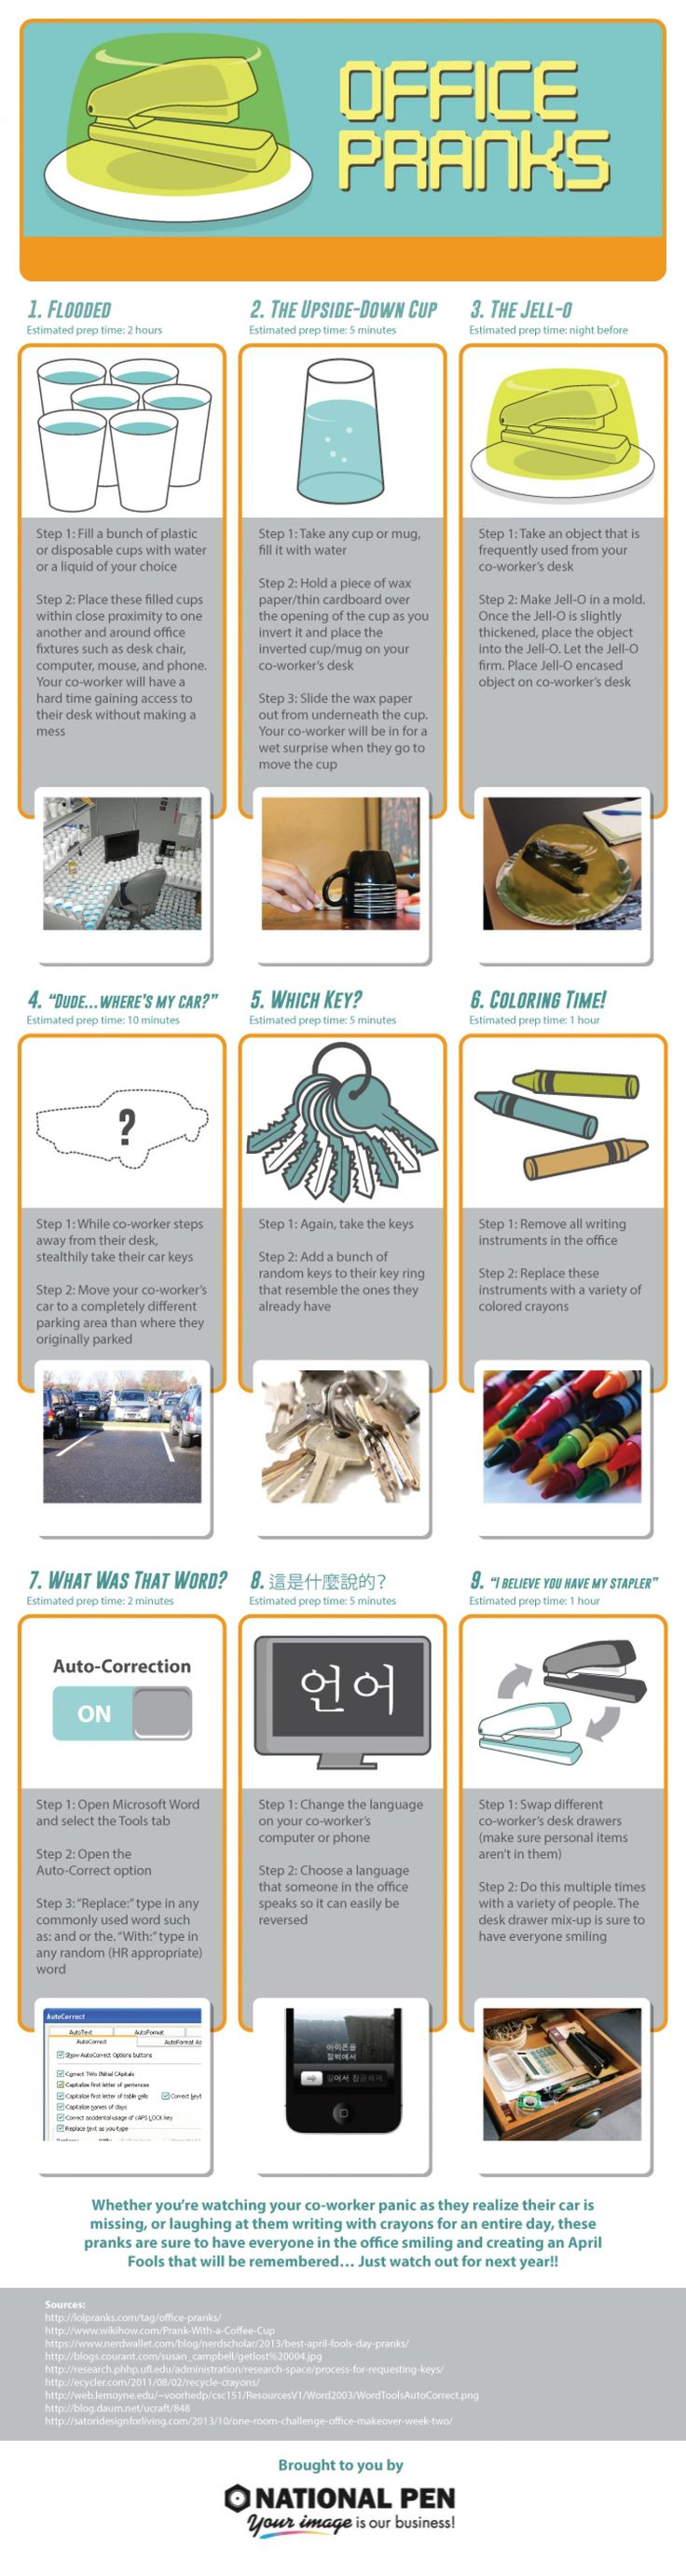 Top Office Pranks for April Fool's Day Infographic | Visio Marketing Group